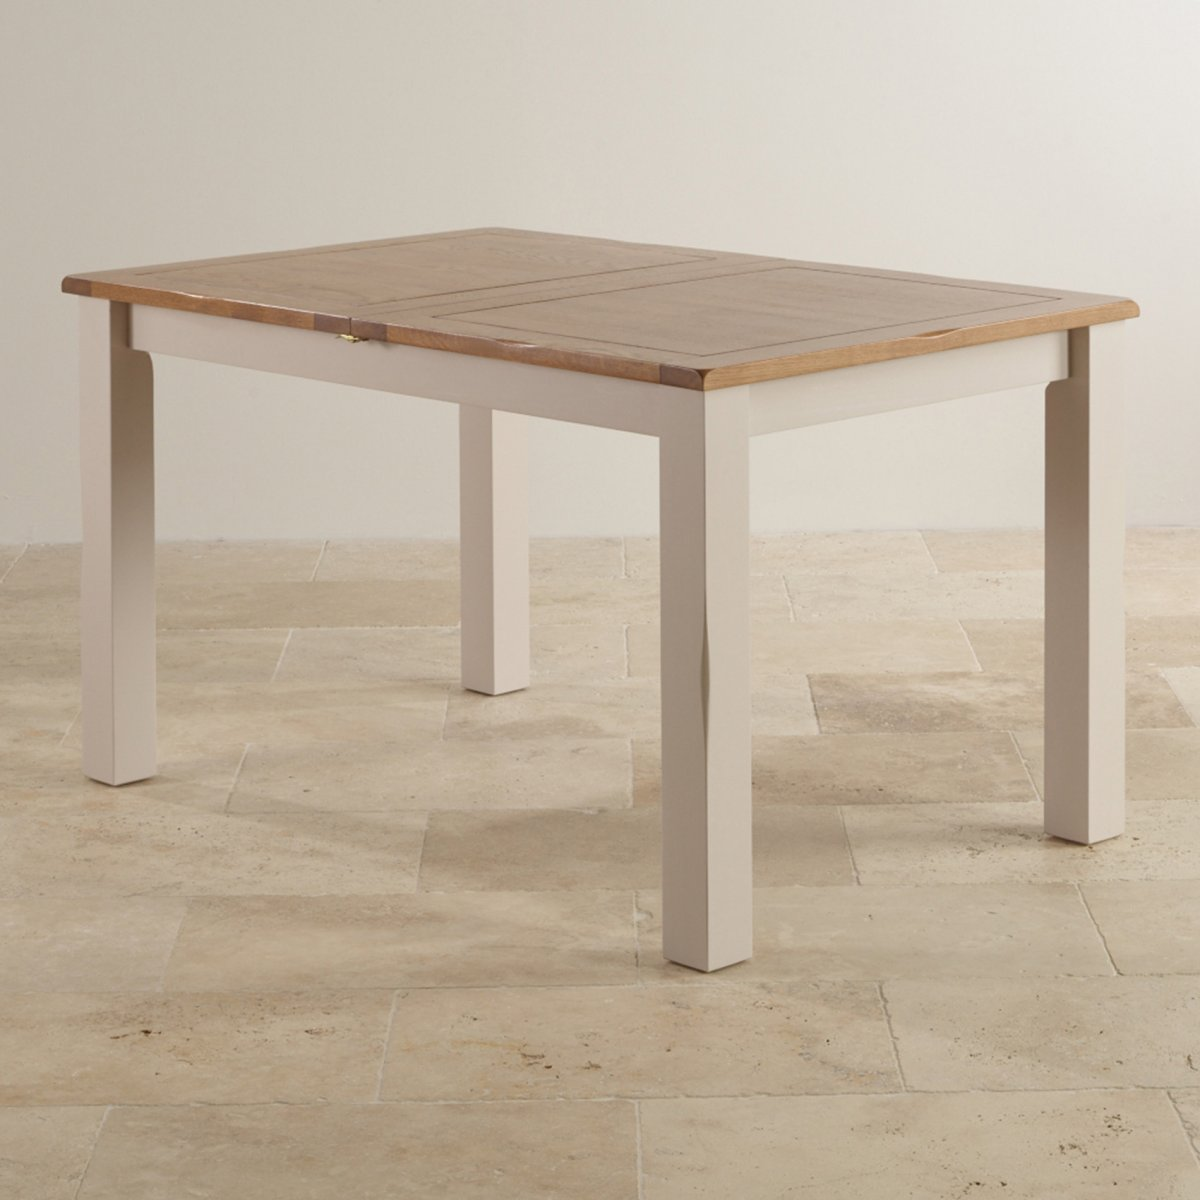 Kemble Rustic Solid Oak Painted 4ft 7 x 3ft Extending Dining Table